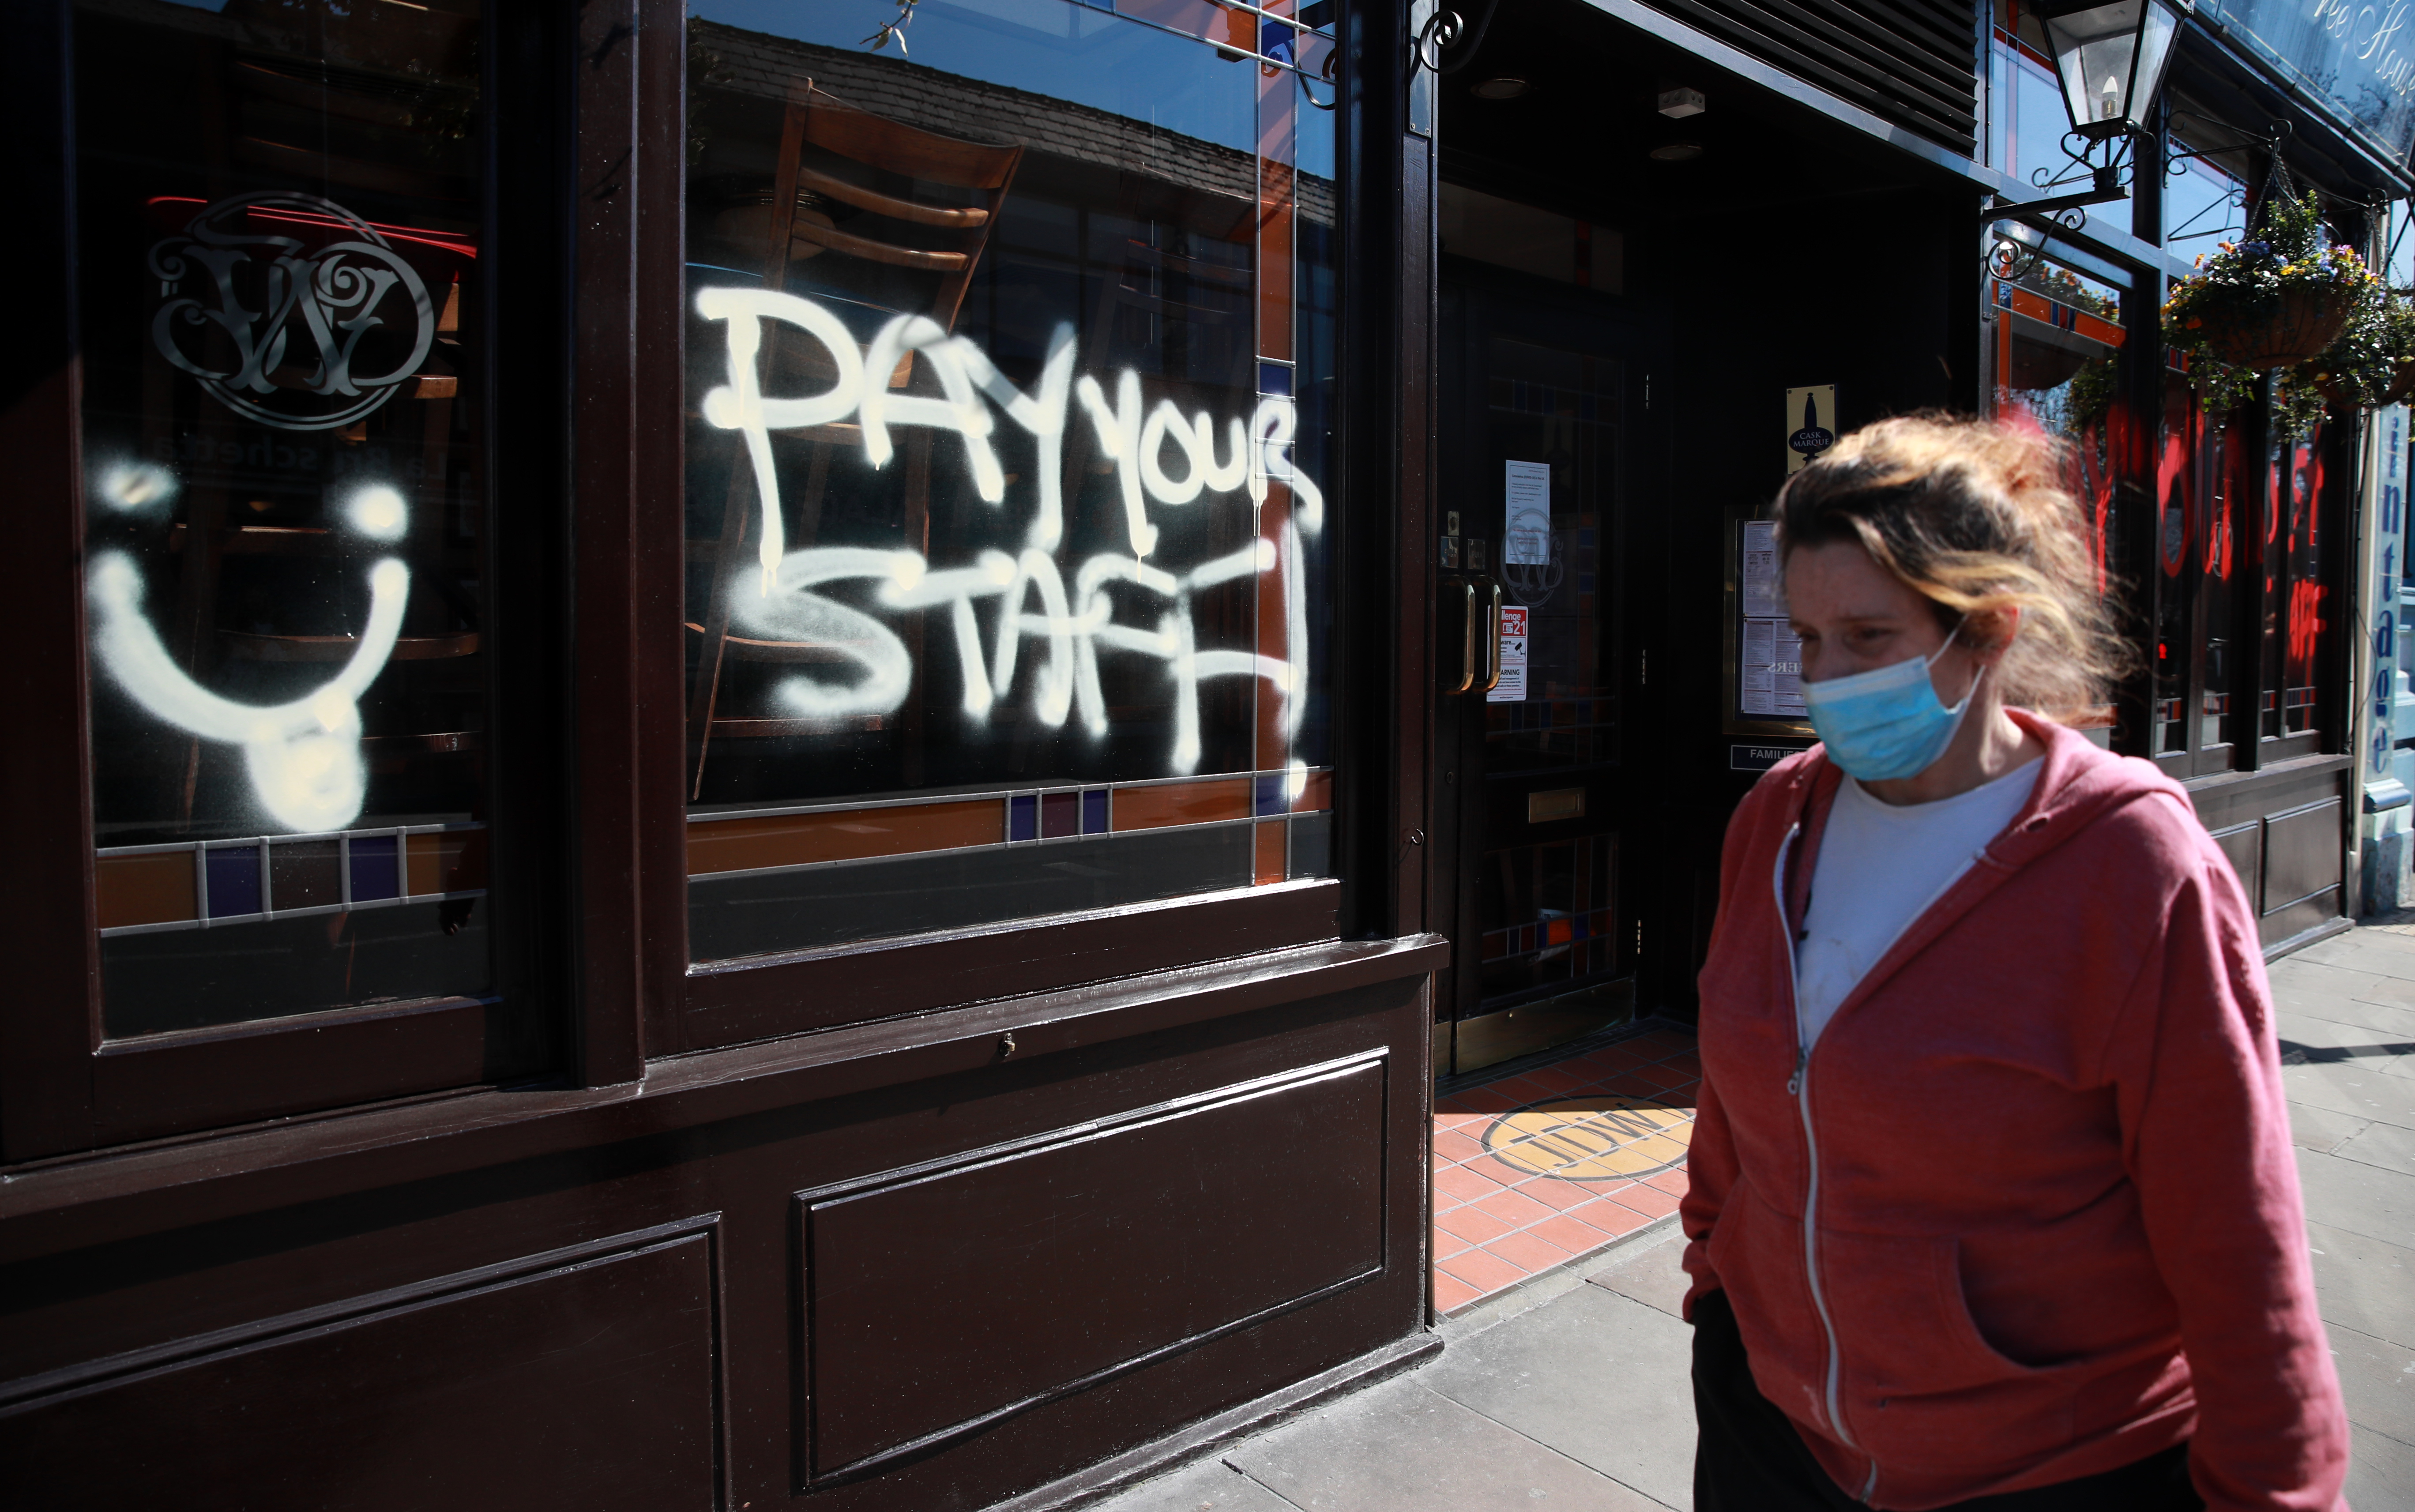 Coronavirus hits Wetherspoons staff: graffiti on a Wetherspoons pub in Crystal Palace